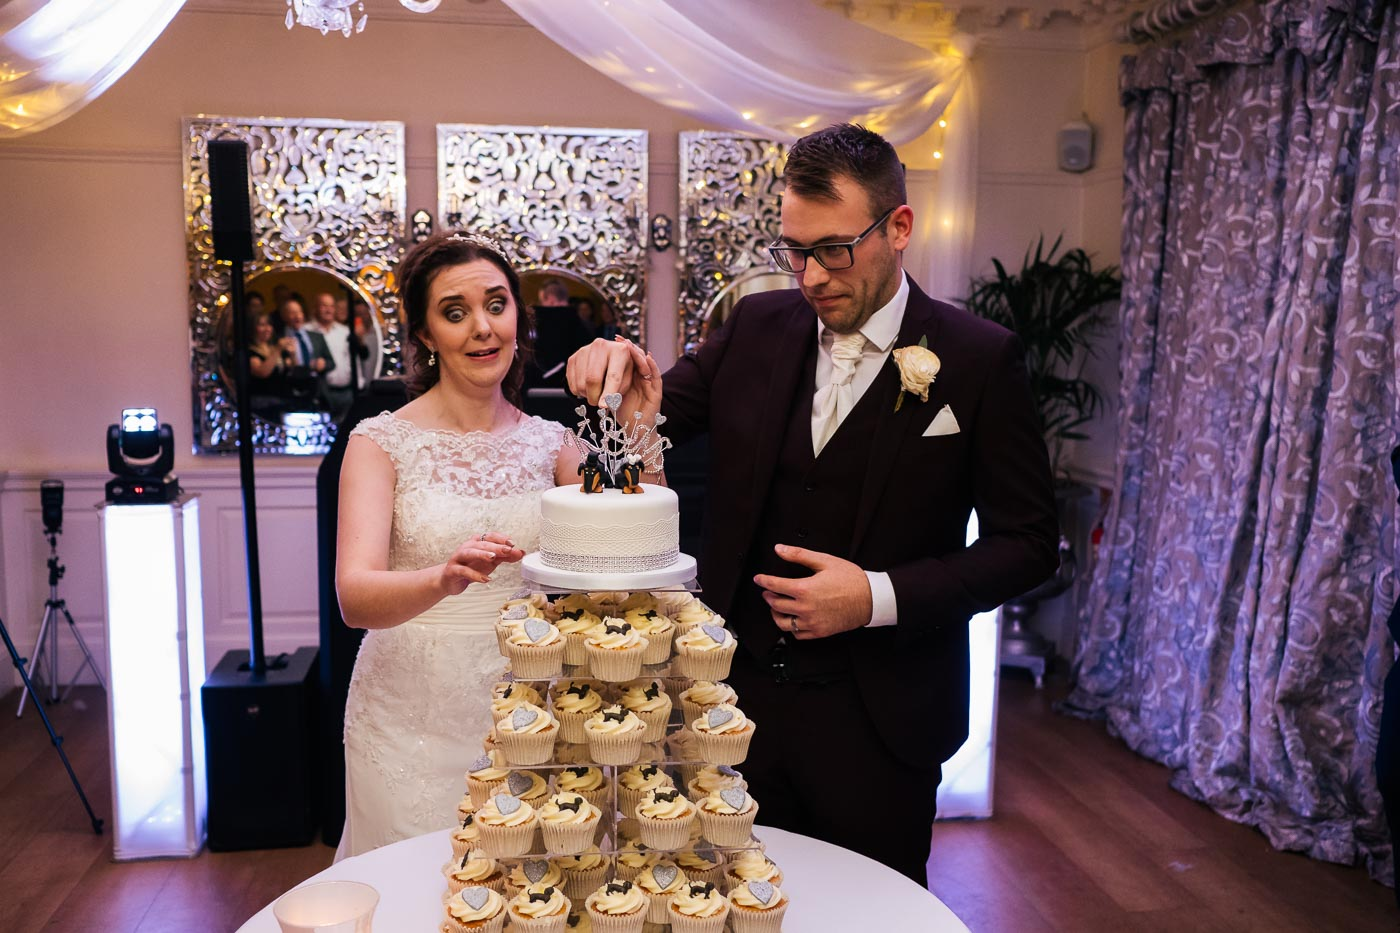 bride pulling funny face as groom cuts the wedding cake